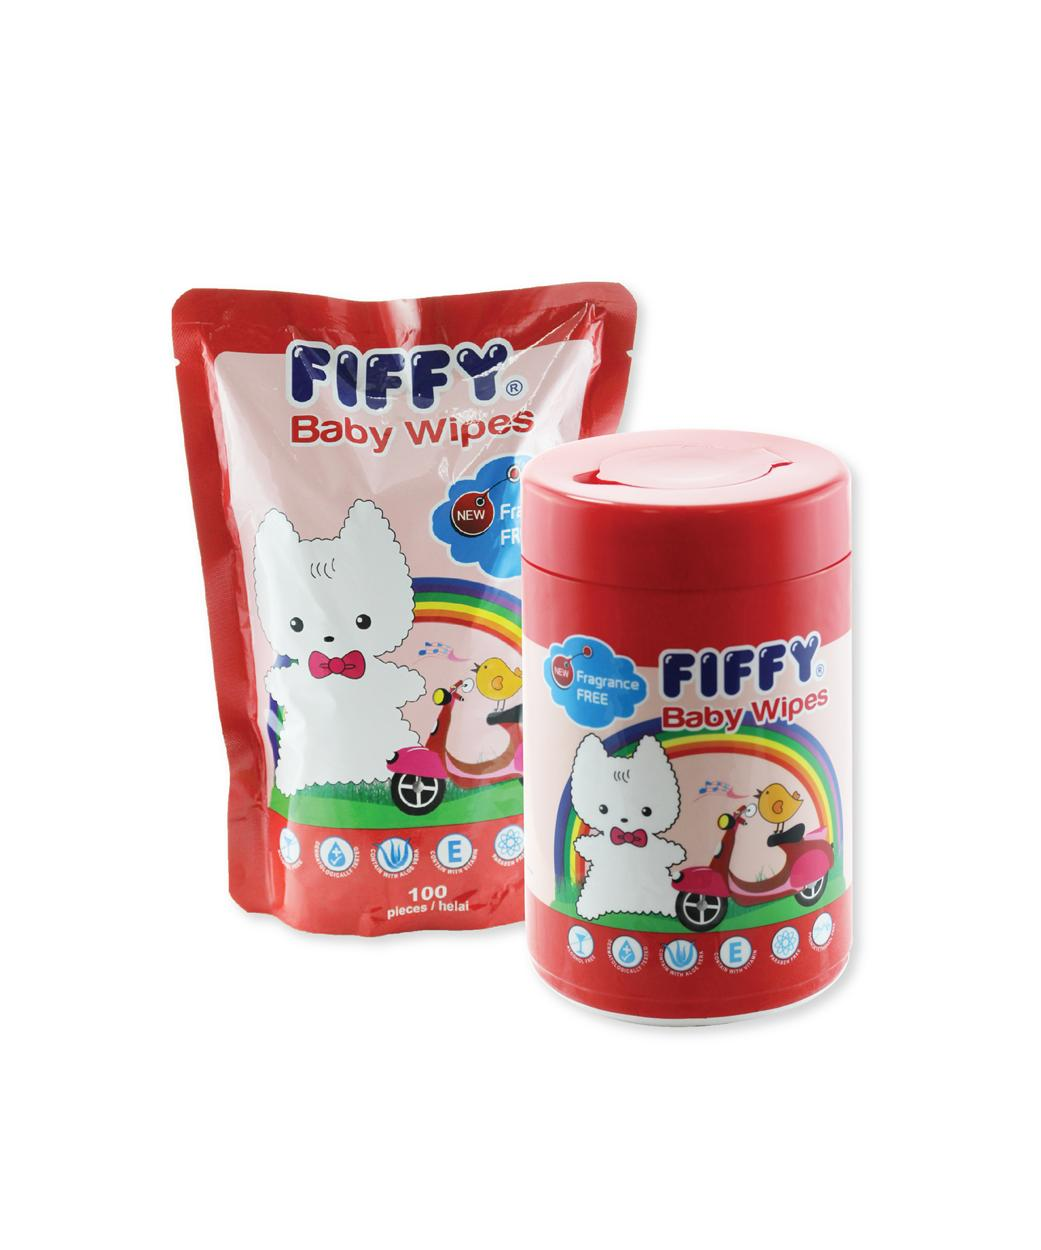 FIFFY BABY WIPES FRAGRANCE FREE ( 1 CAN + 1 REFILL) - A98504